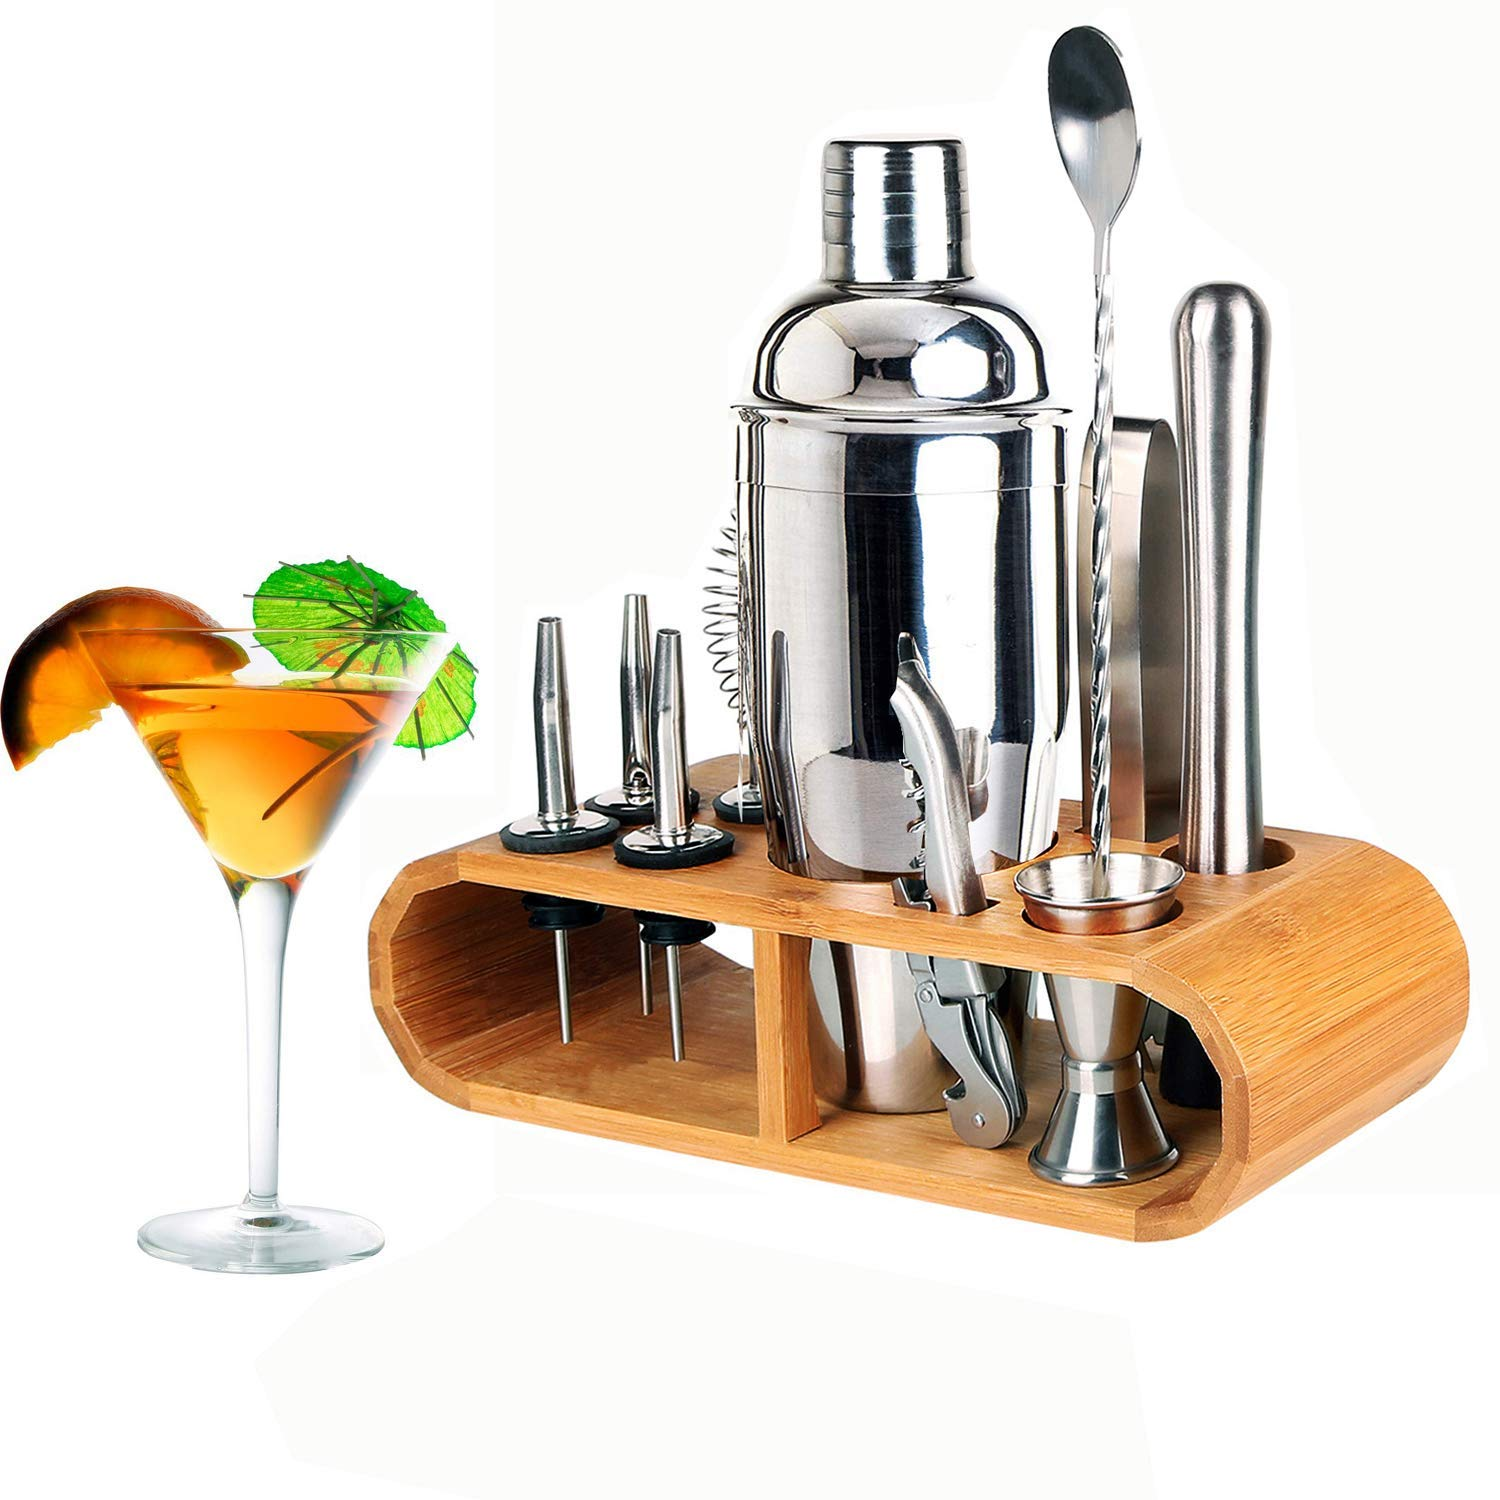 12 Piece Cocktail Making Set Cocktail Shaker Kit Stainless Steel Bar Bartender Accessories Including Spoons Muddler Jigger and Strainer with Stand